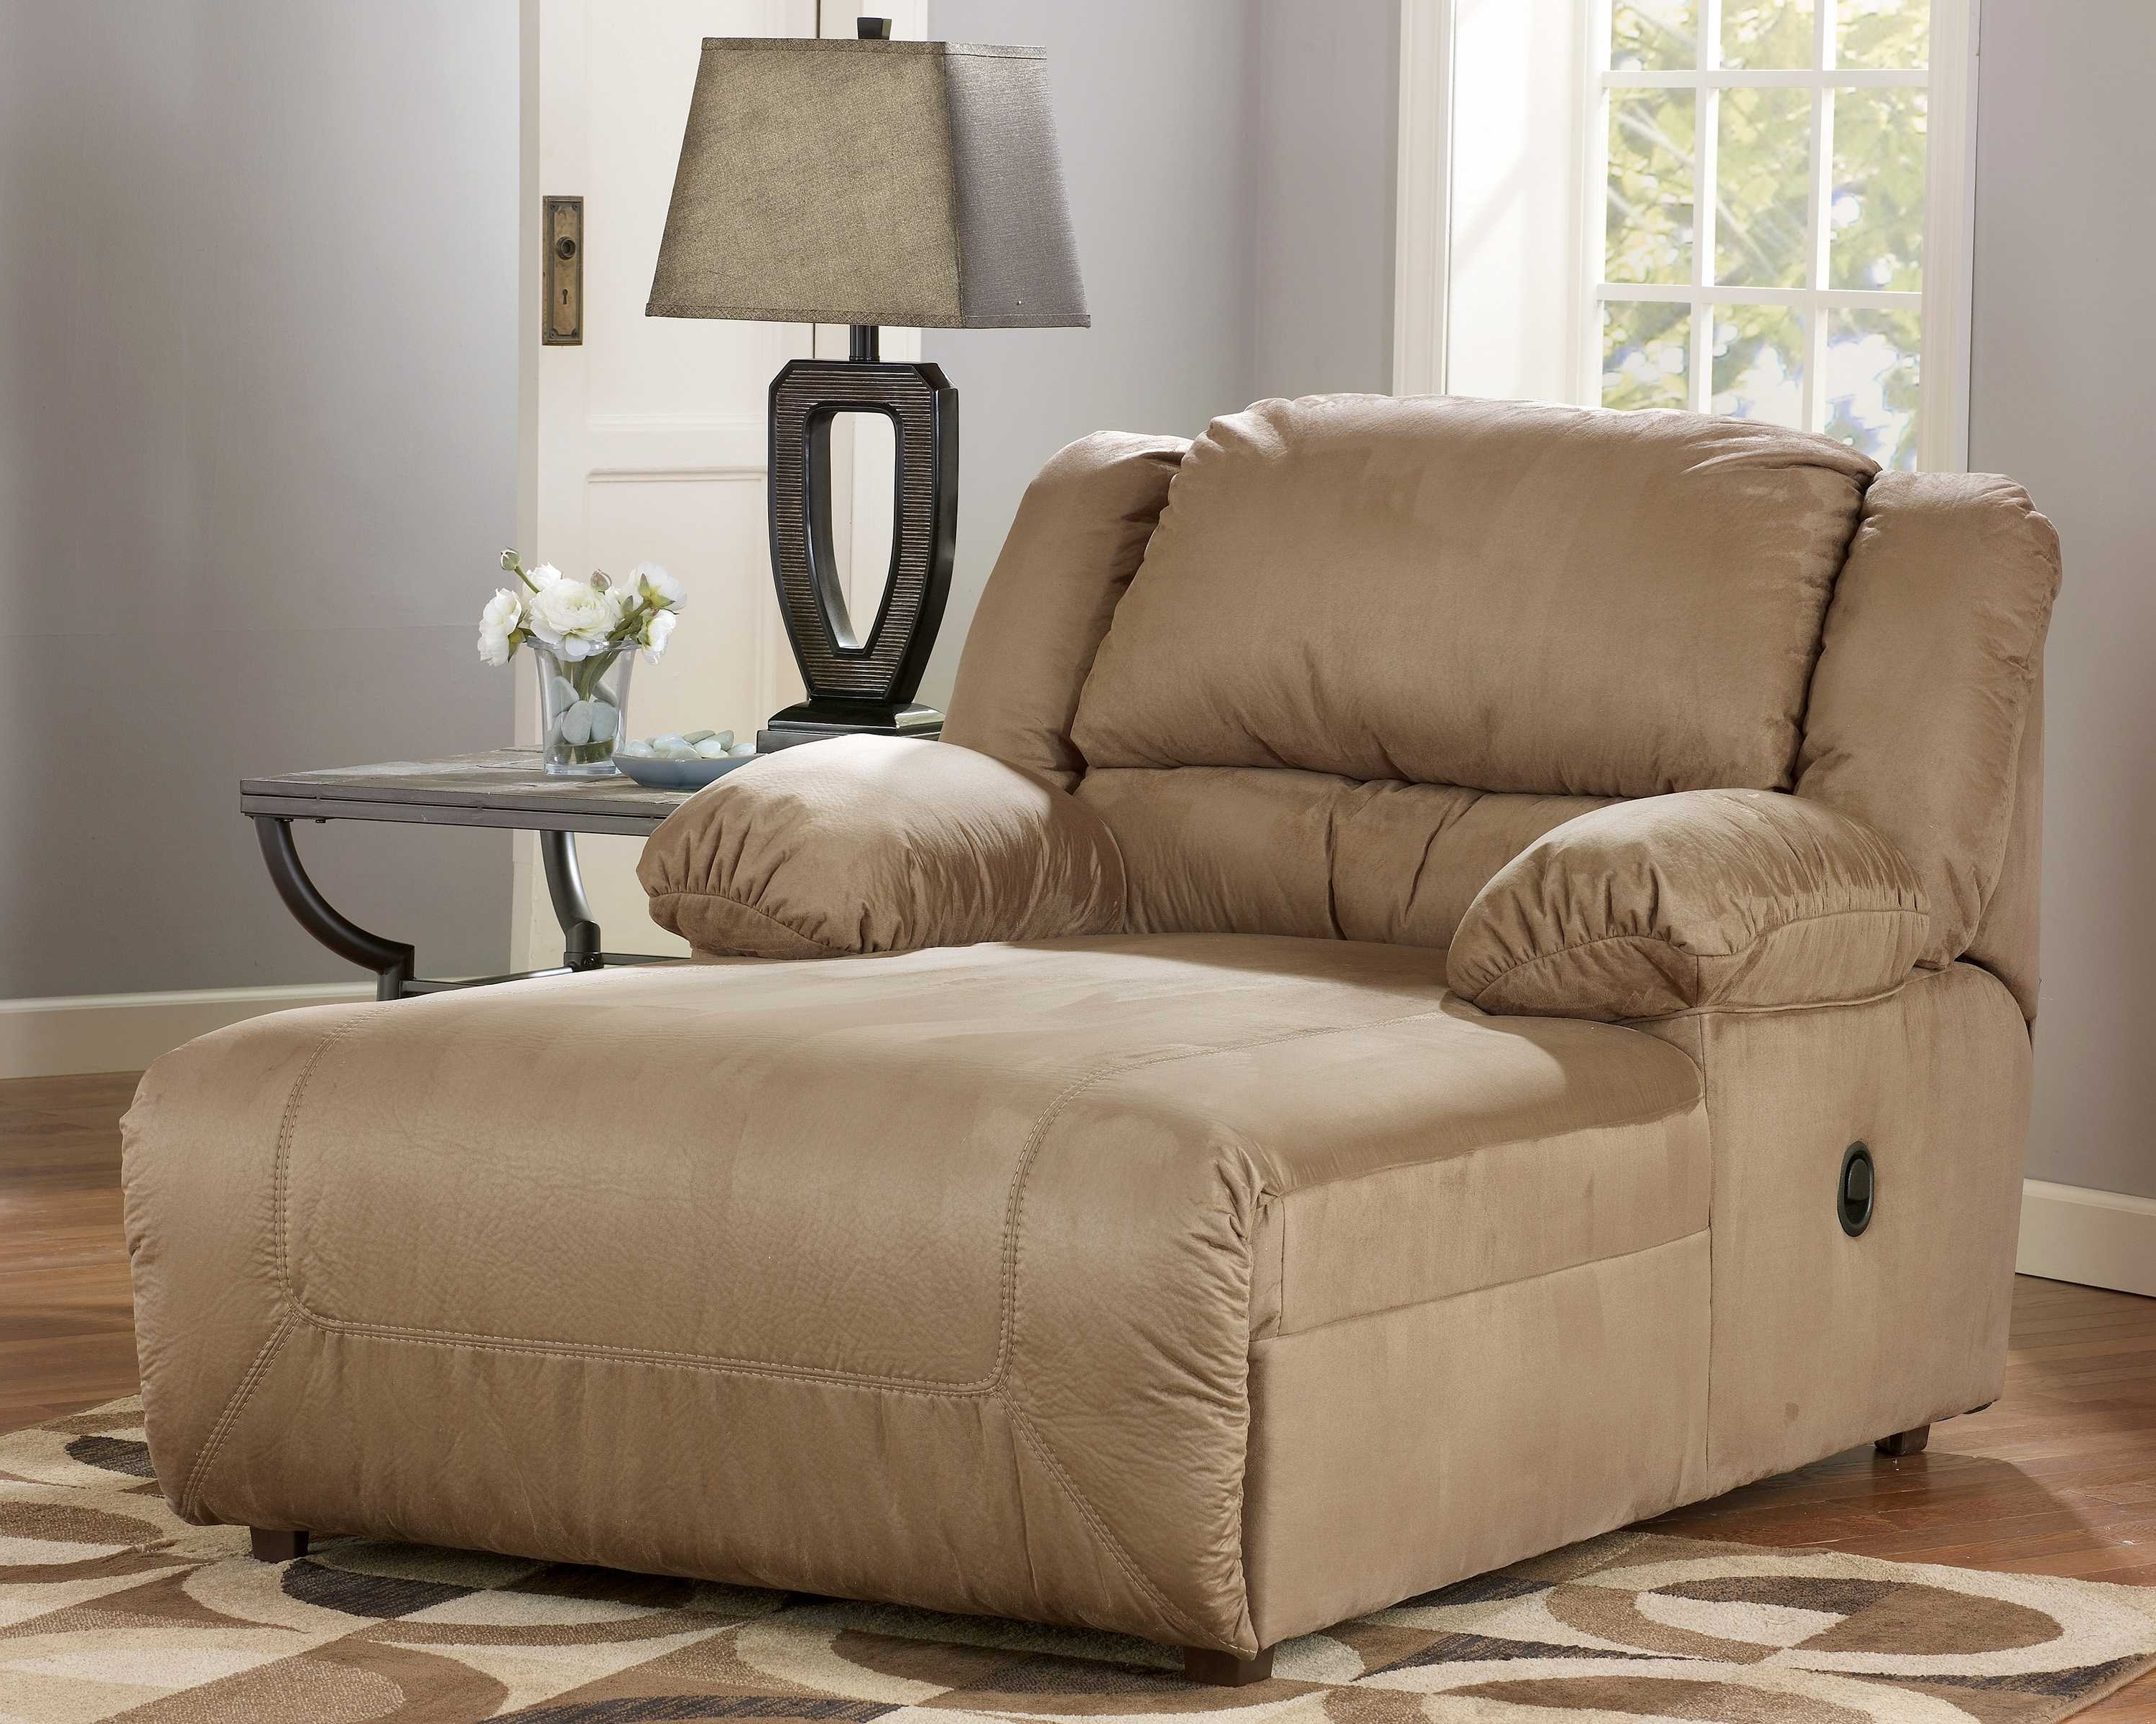 Widely Used Sectional Sofa With Cuddler Chaise Collection And Picture ~ Runmehome Throughout Cuddler Chaises (View 15 of 15)